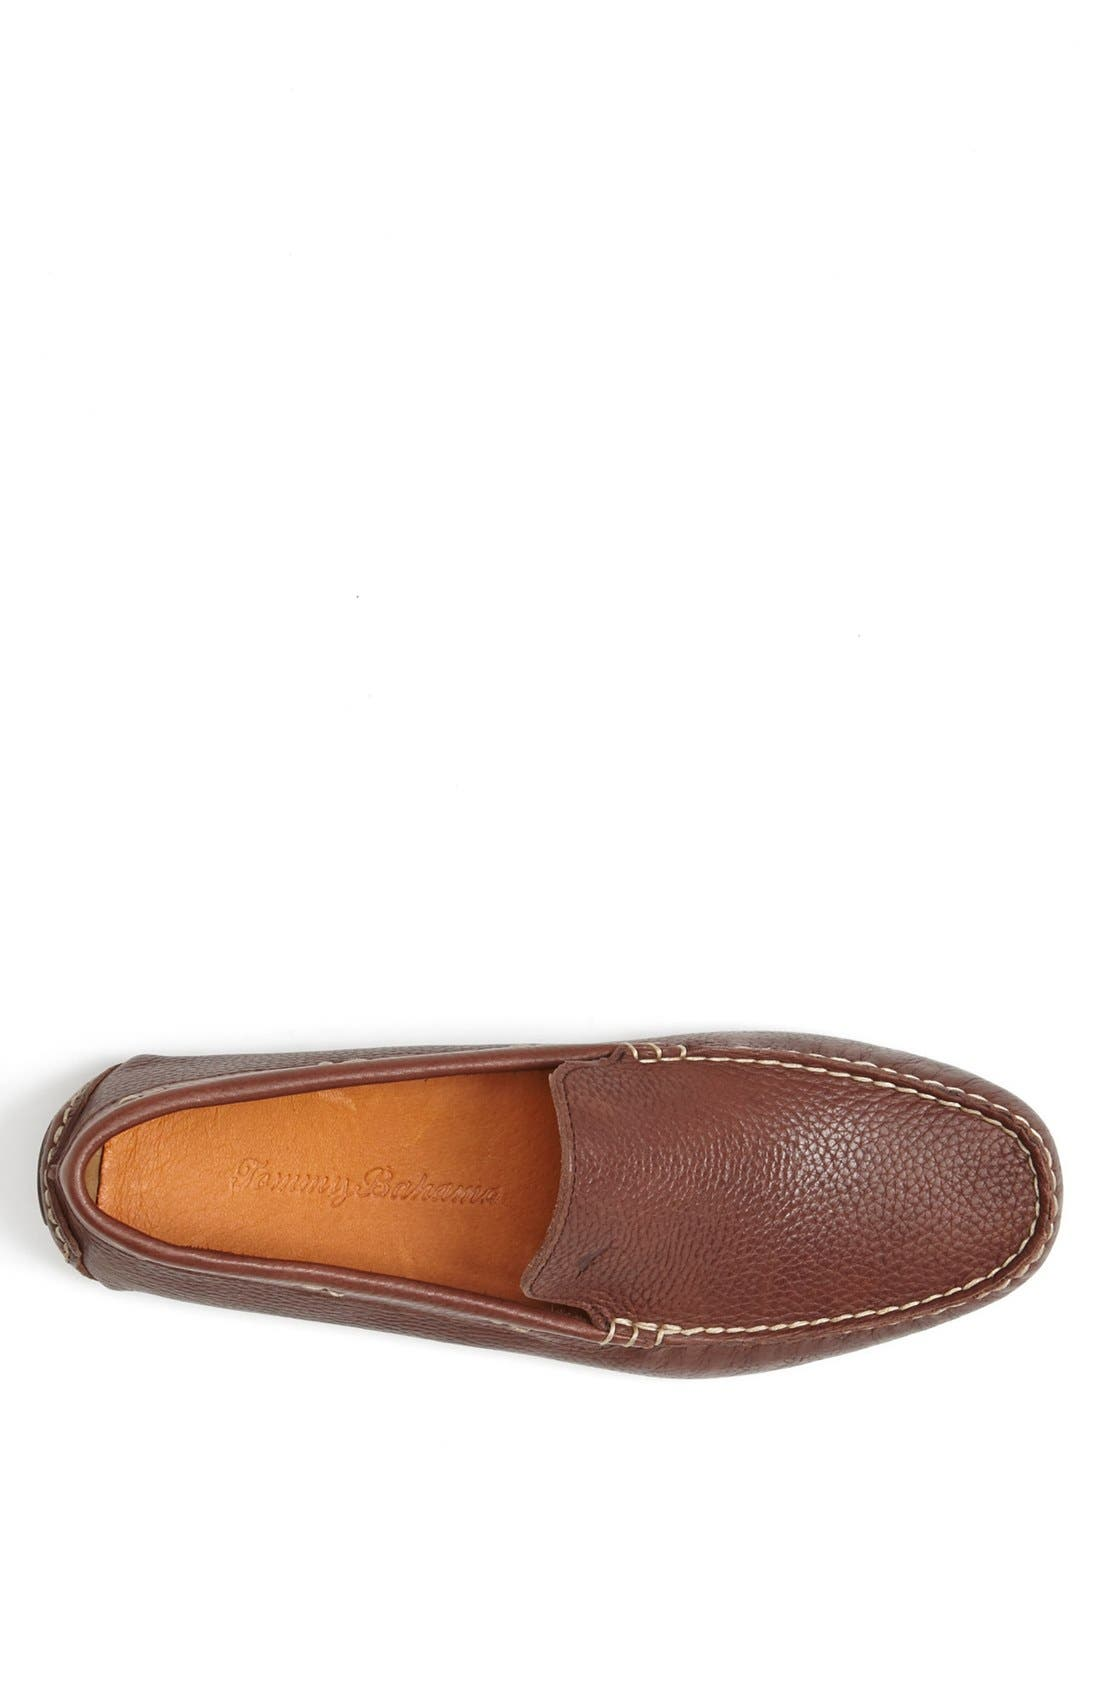 Alternate Image 3  - Tommy Bahama 'Pagota' Driving Shoe